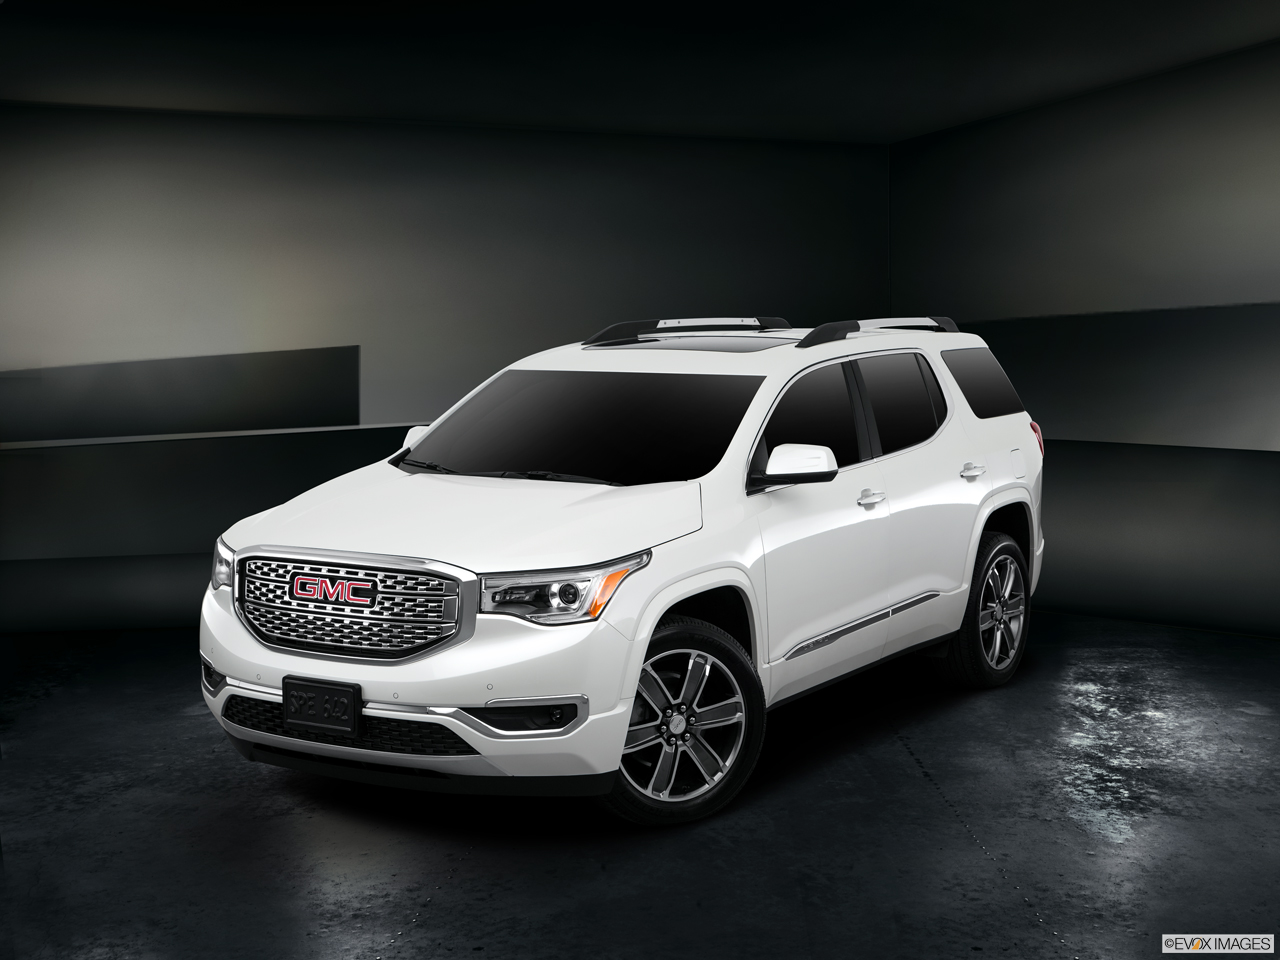 Exterior View Of 2017 GMC Terrain in Costa Mesa